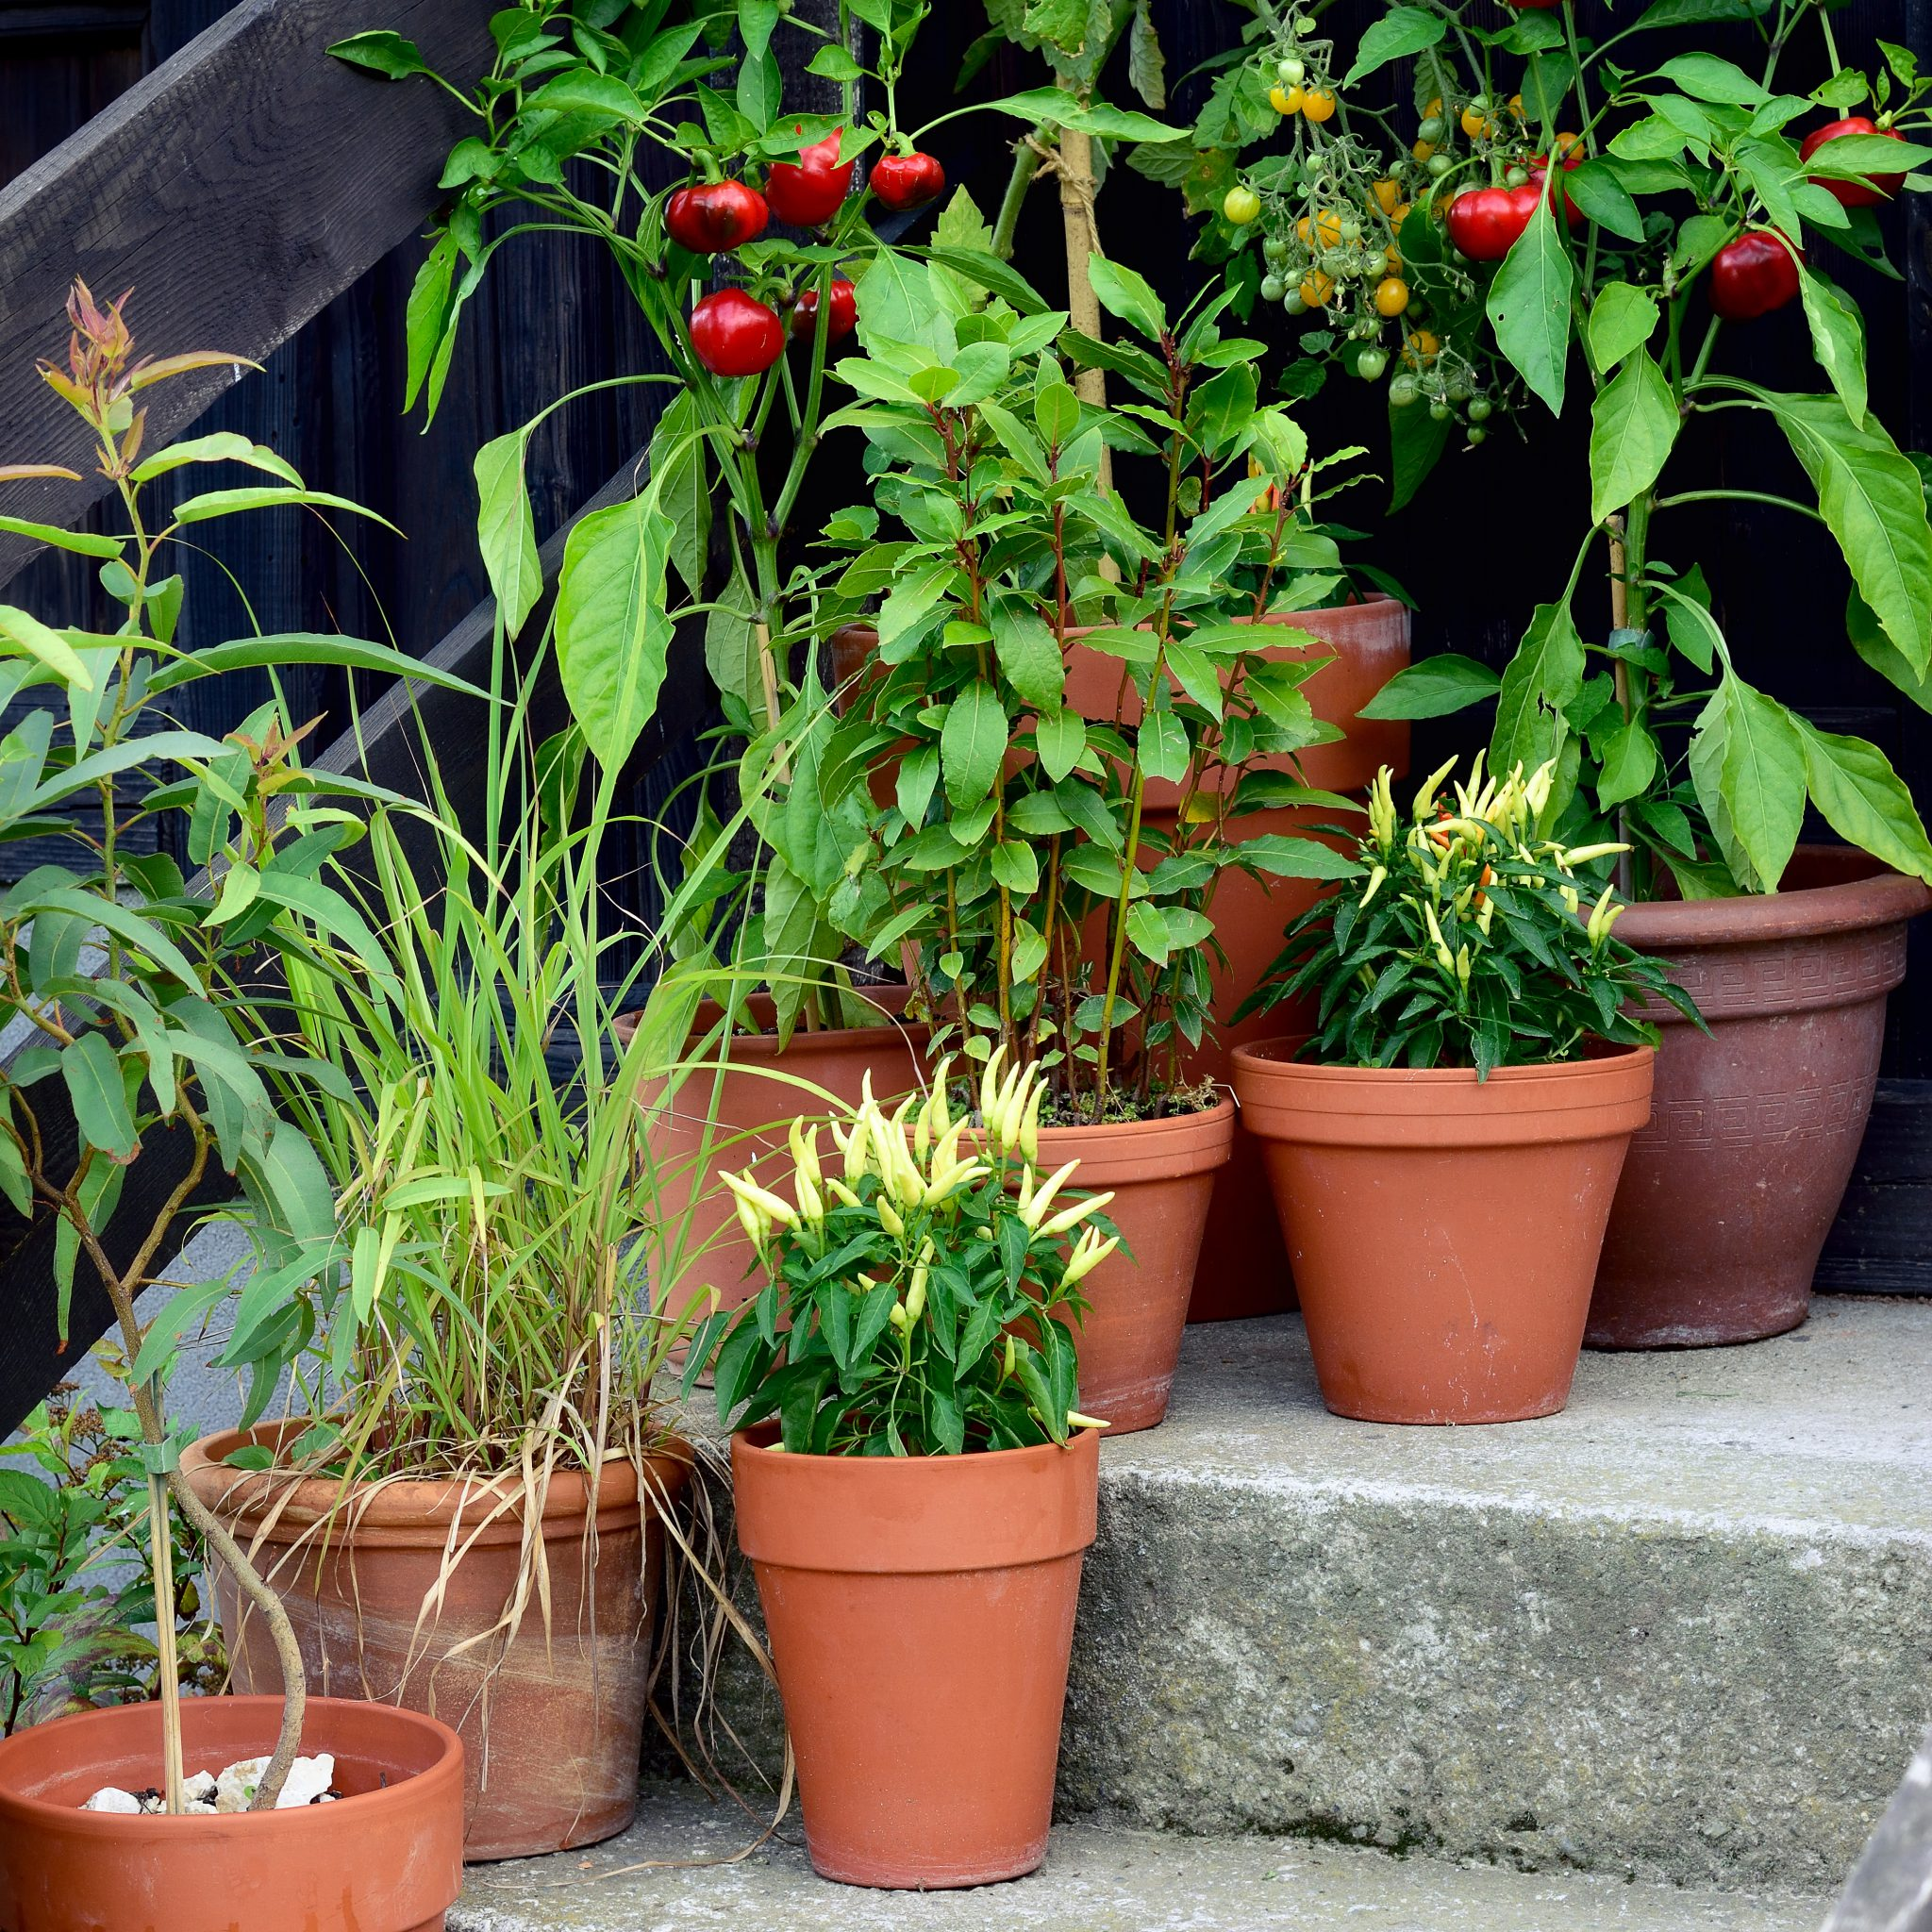 A grouping of 8 edible plants grown in containers and pots on the steps of an urban home: tomatoes, peppers, lemon grass.